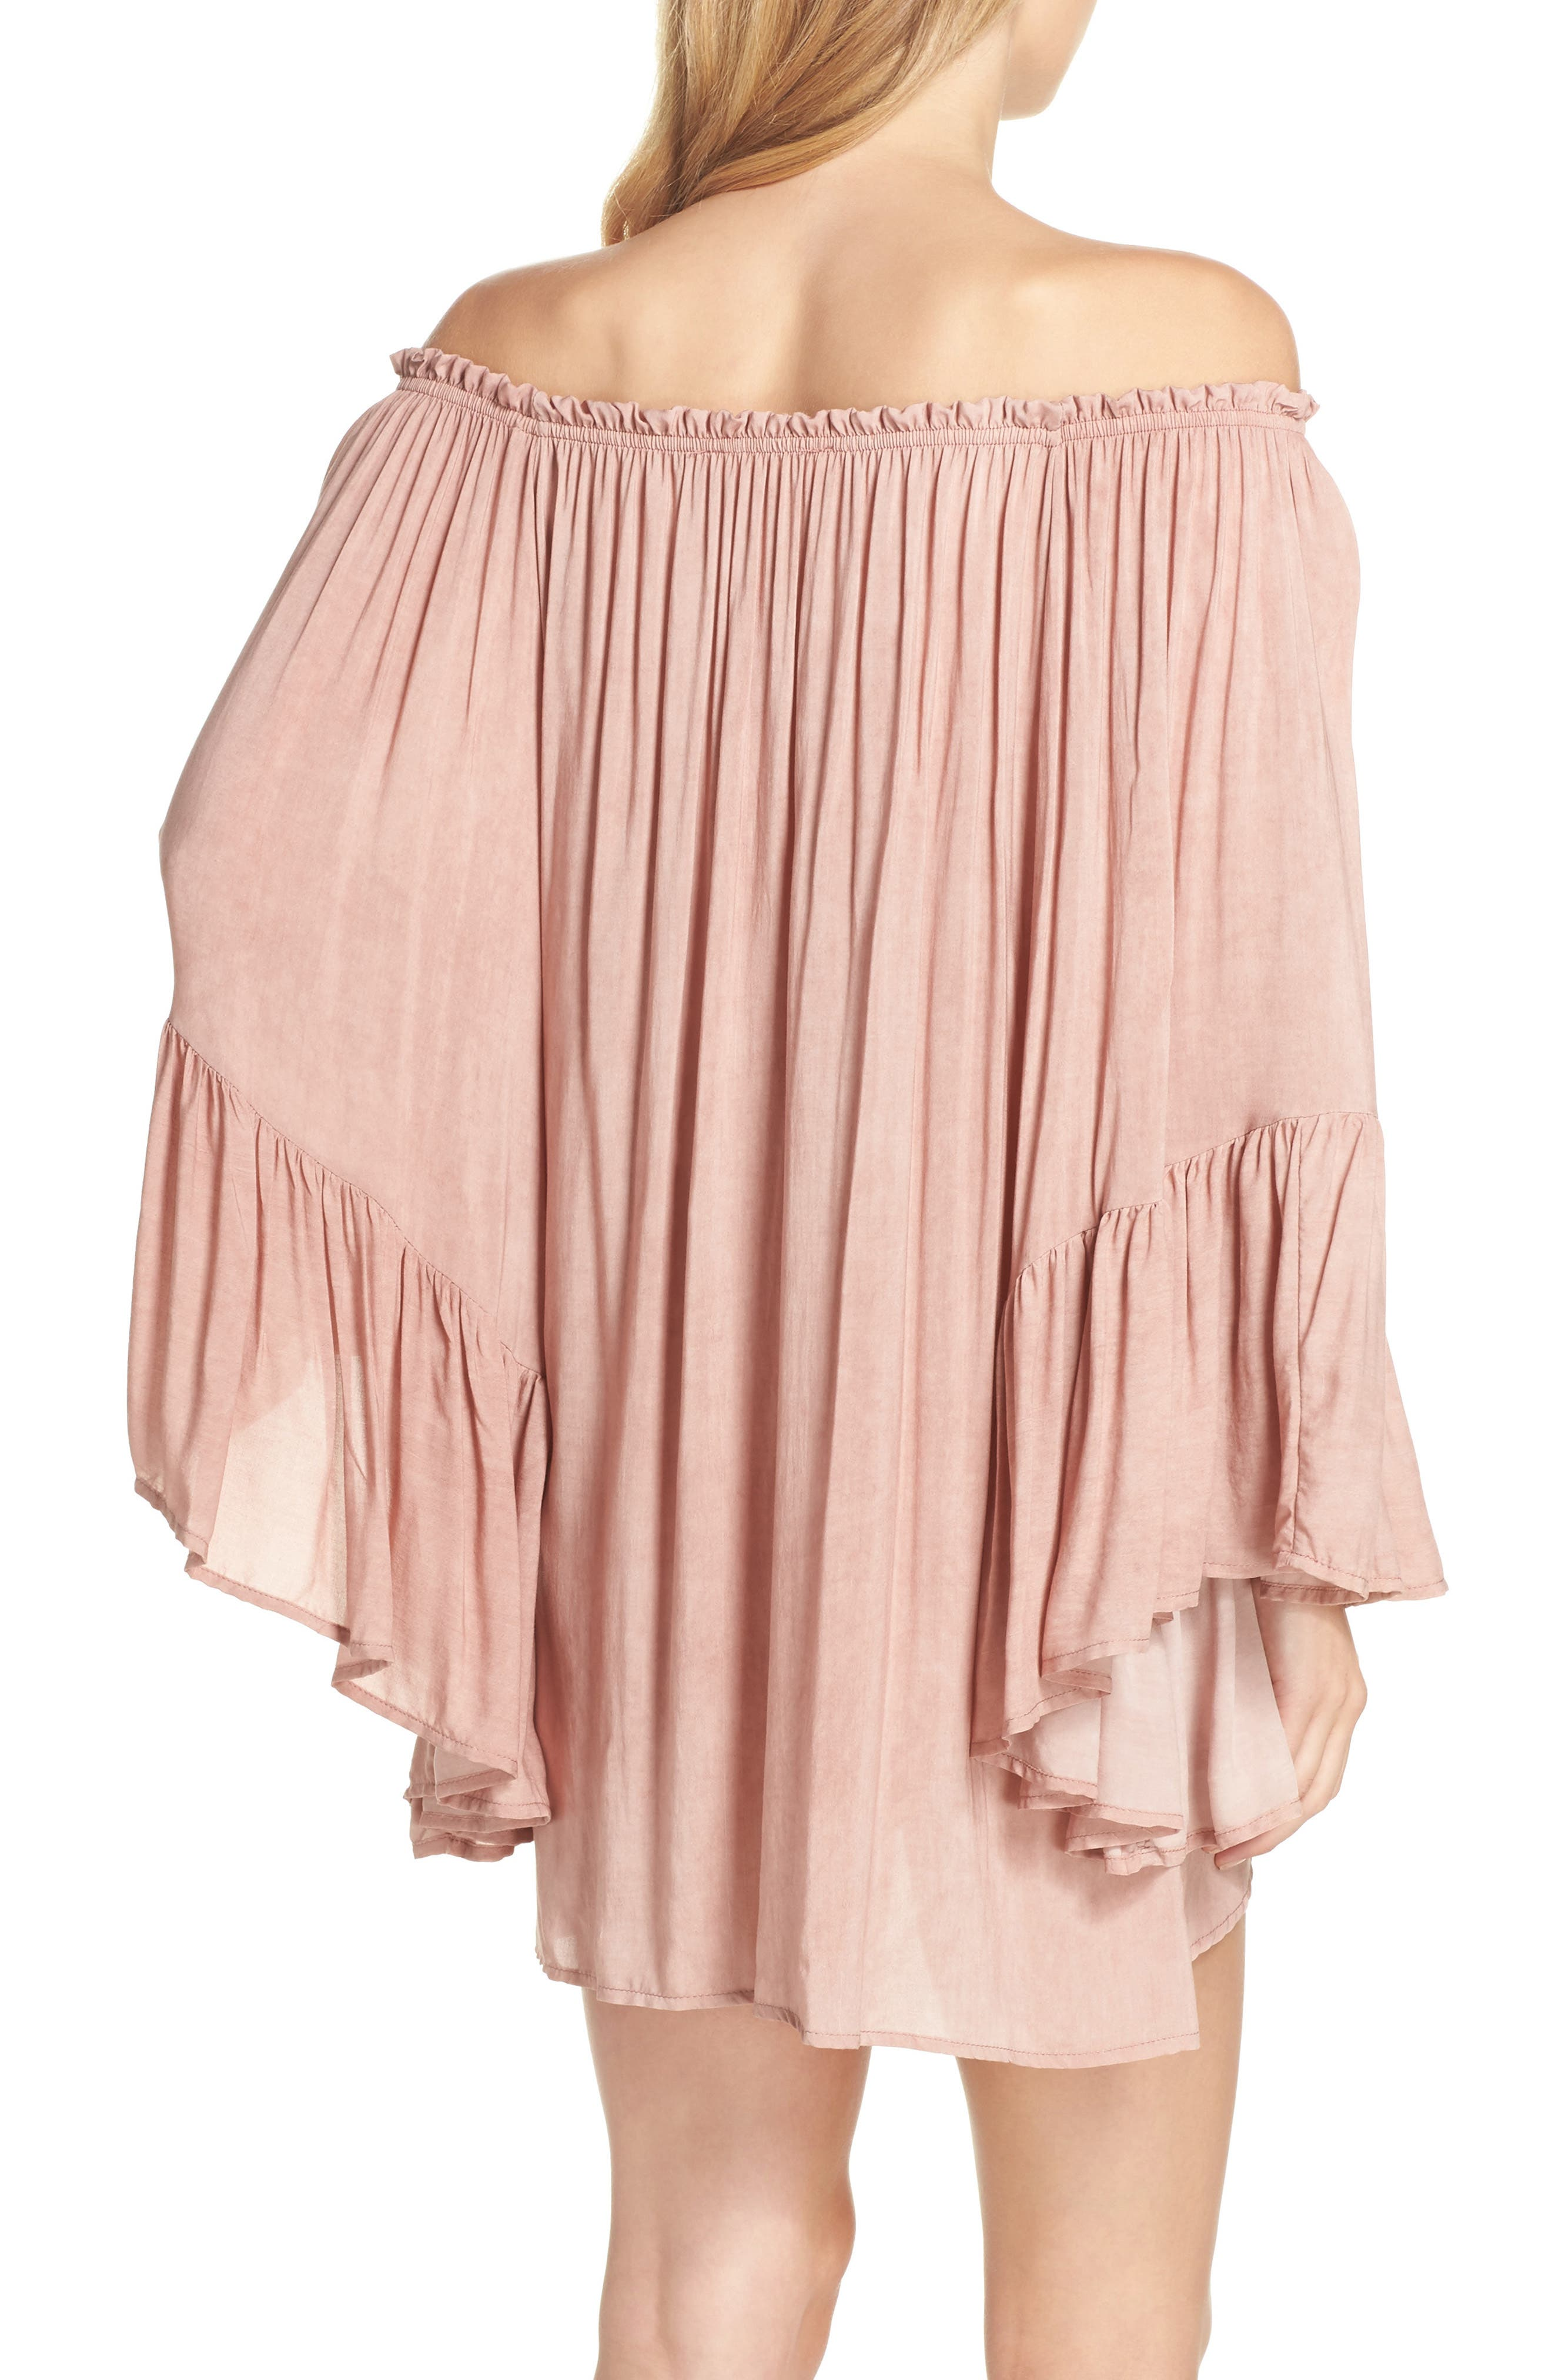 Bell Sleeve Cover-Up Tunic Dress,                             Alternate thumbnail 2, color,                             663